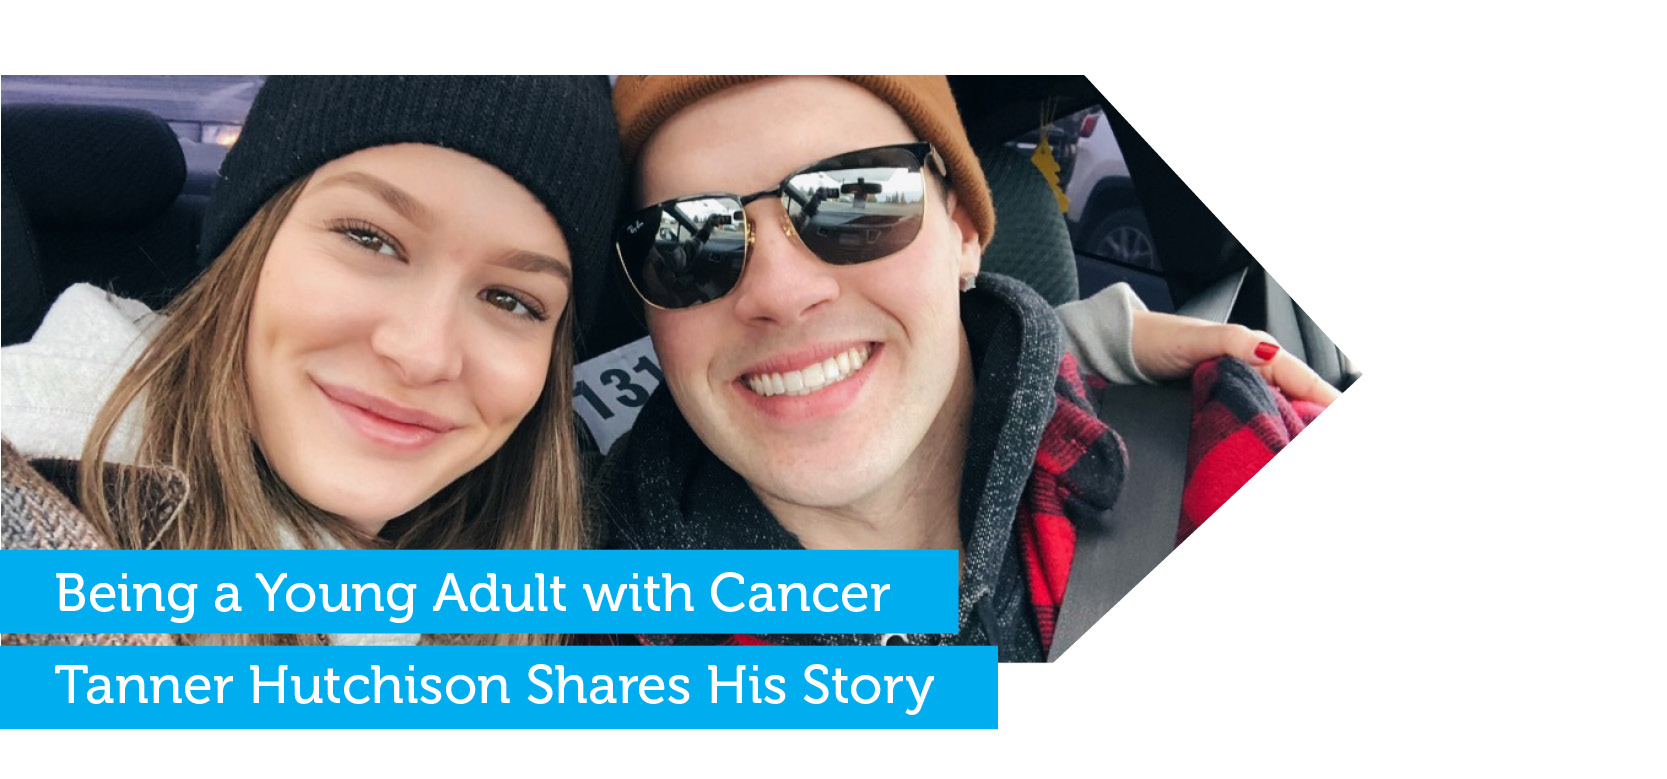 Being a young adult with cancer - Tanner Hutchinson shares his story